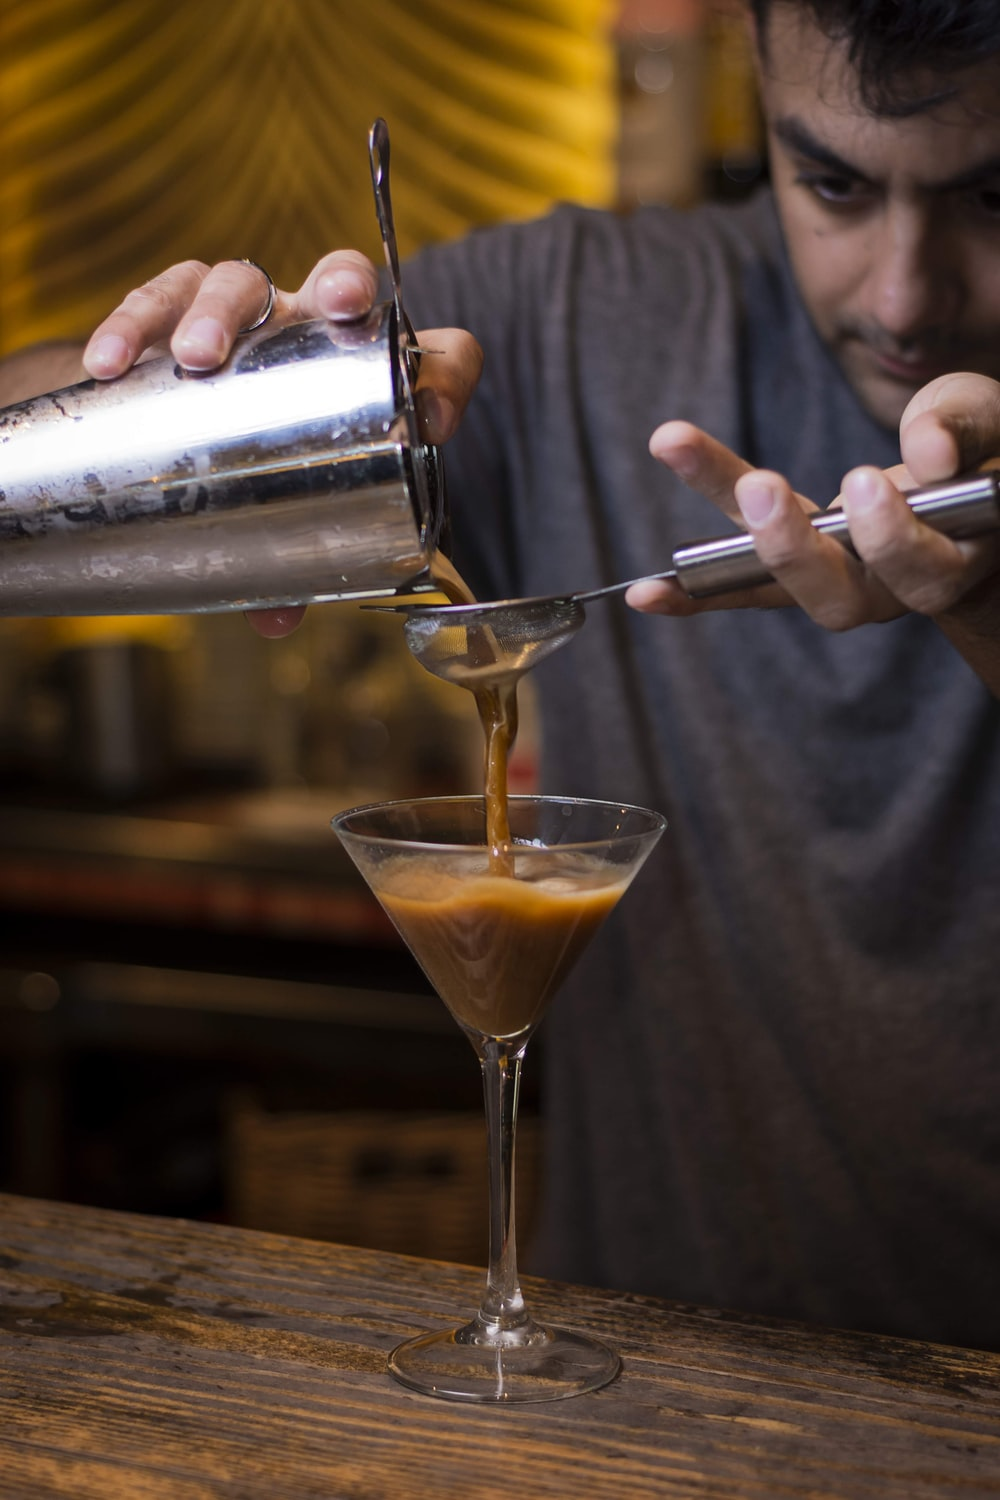 man in gray crew neck shirt holding stainless steel cocktail shaker pouring orange liquid on clear